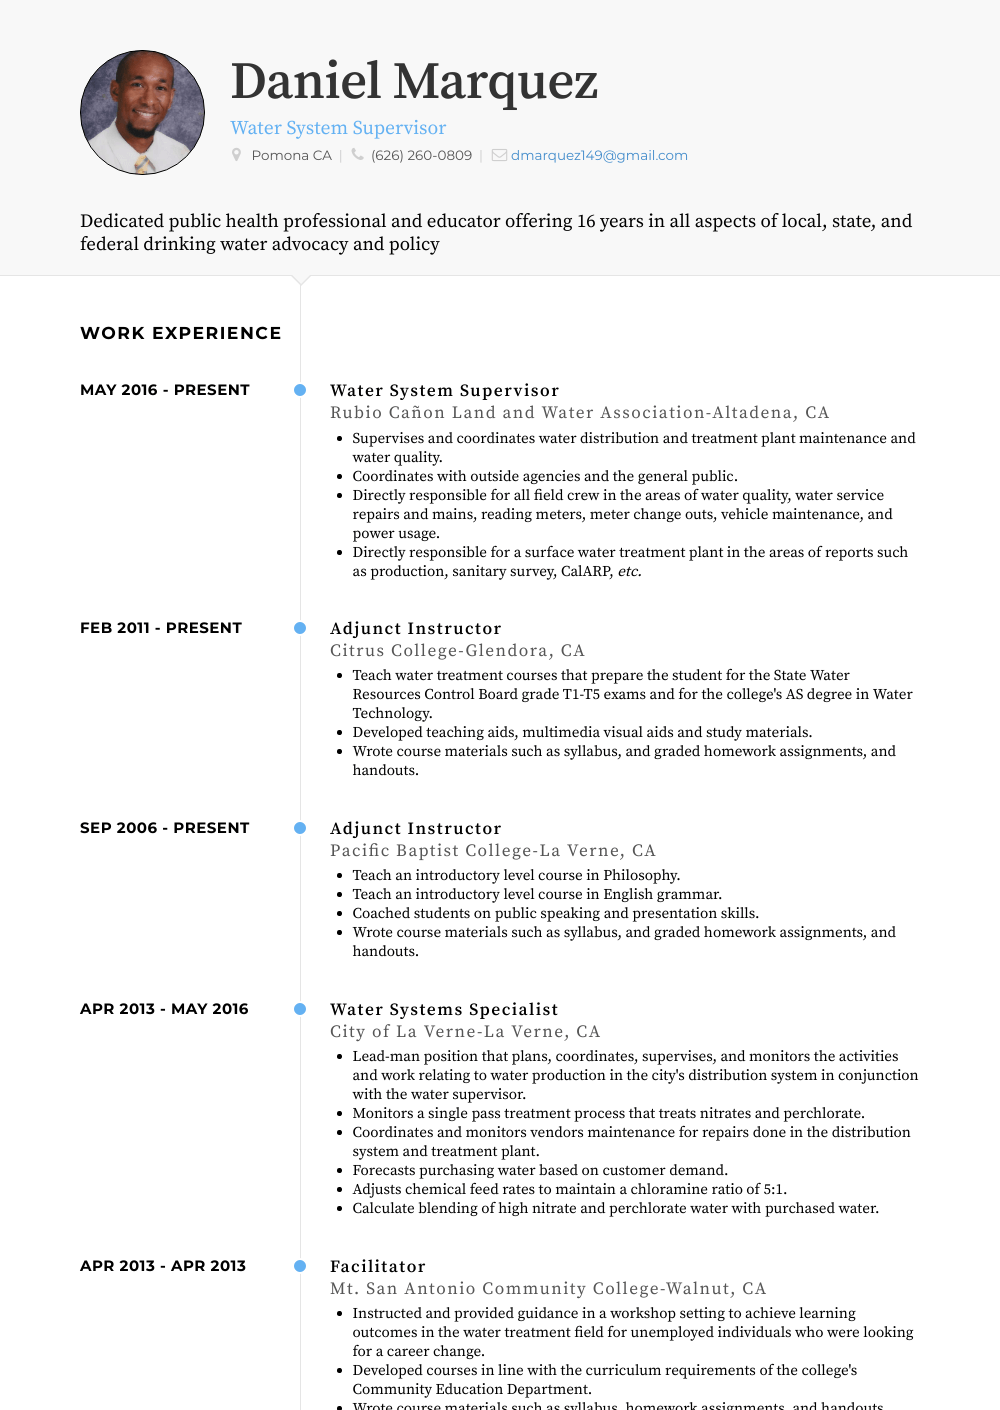 Adjunct Instructor Resume Samples Amp Templates Visualcv